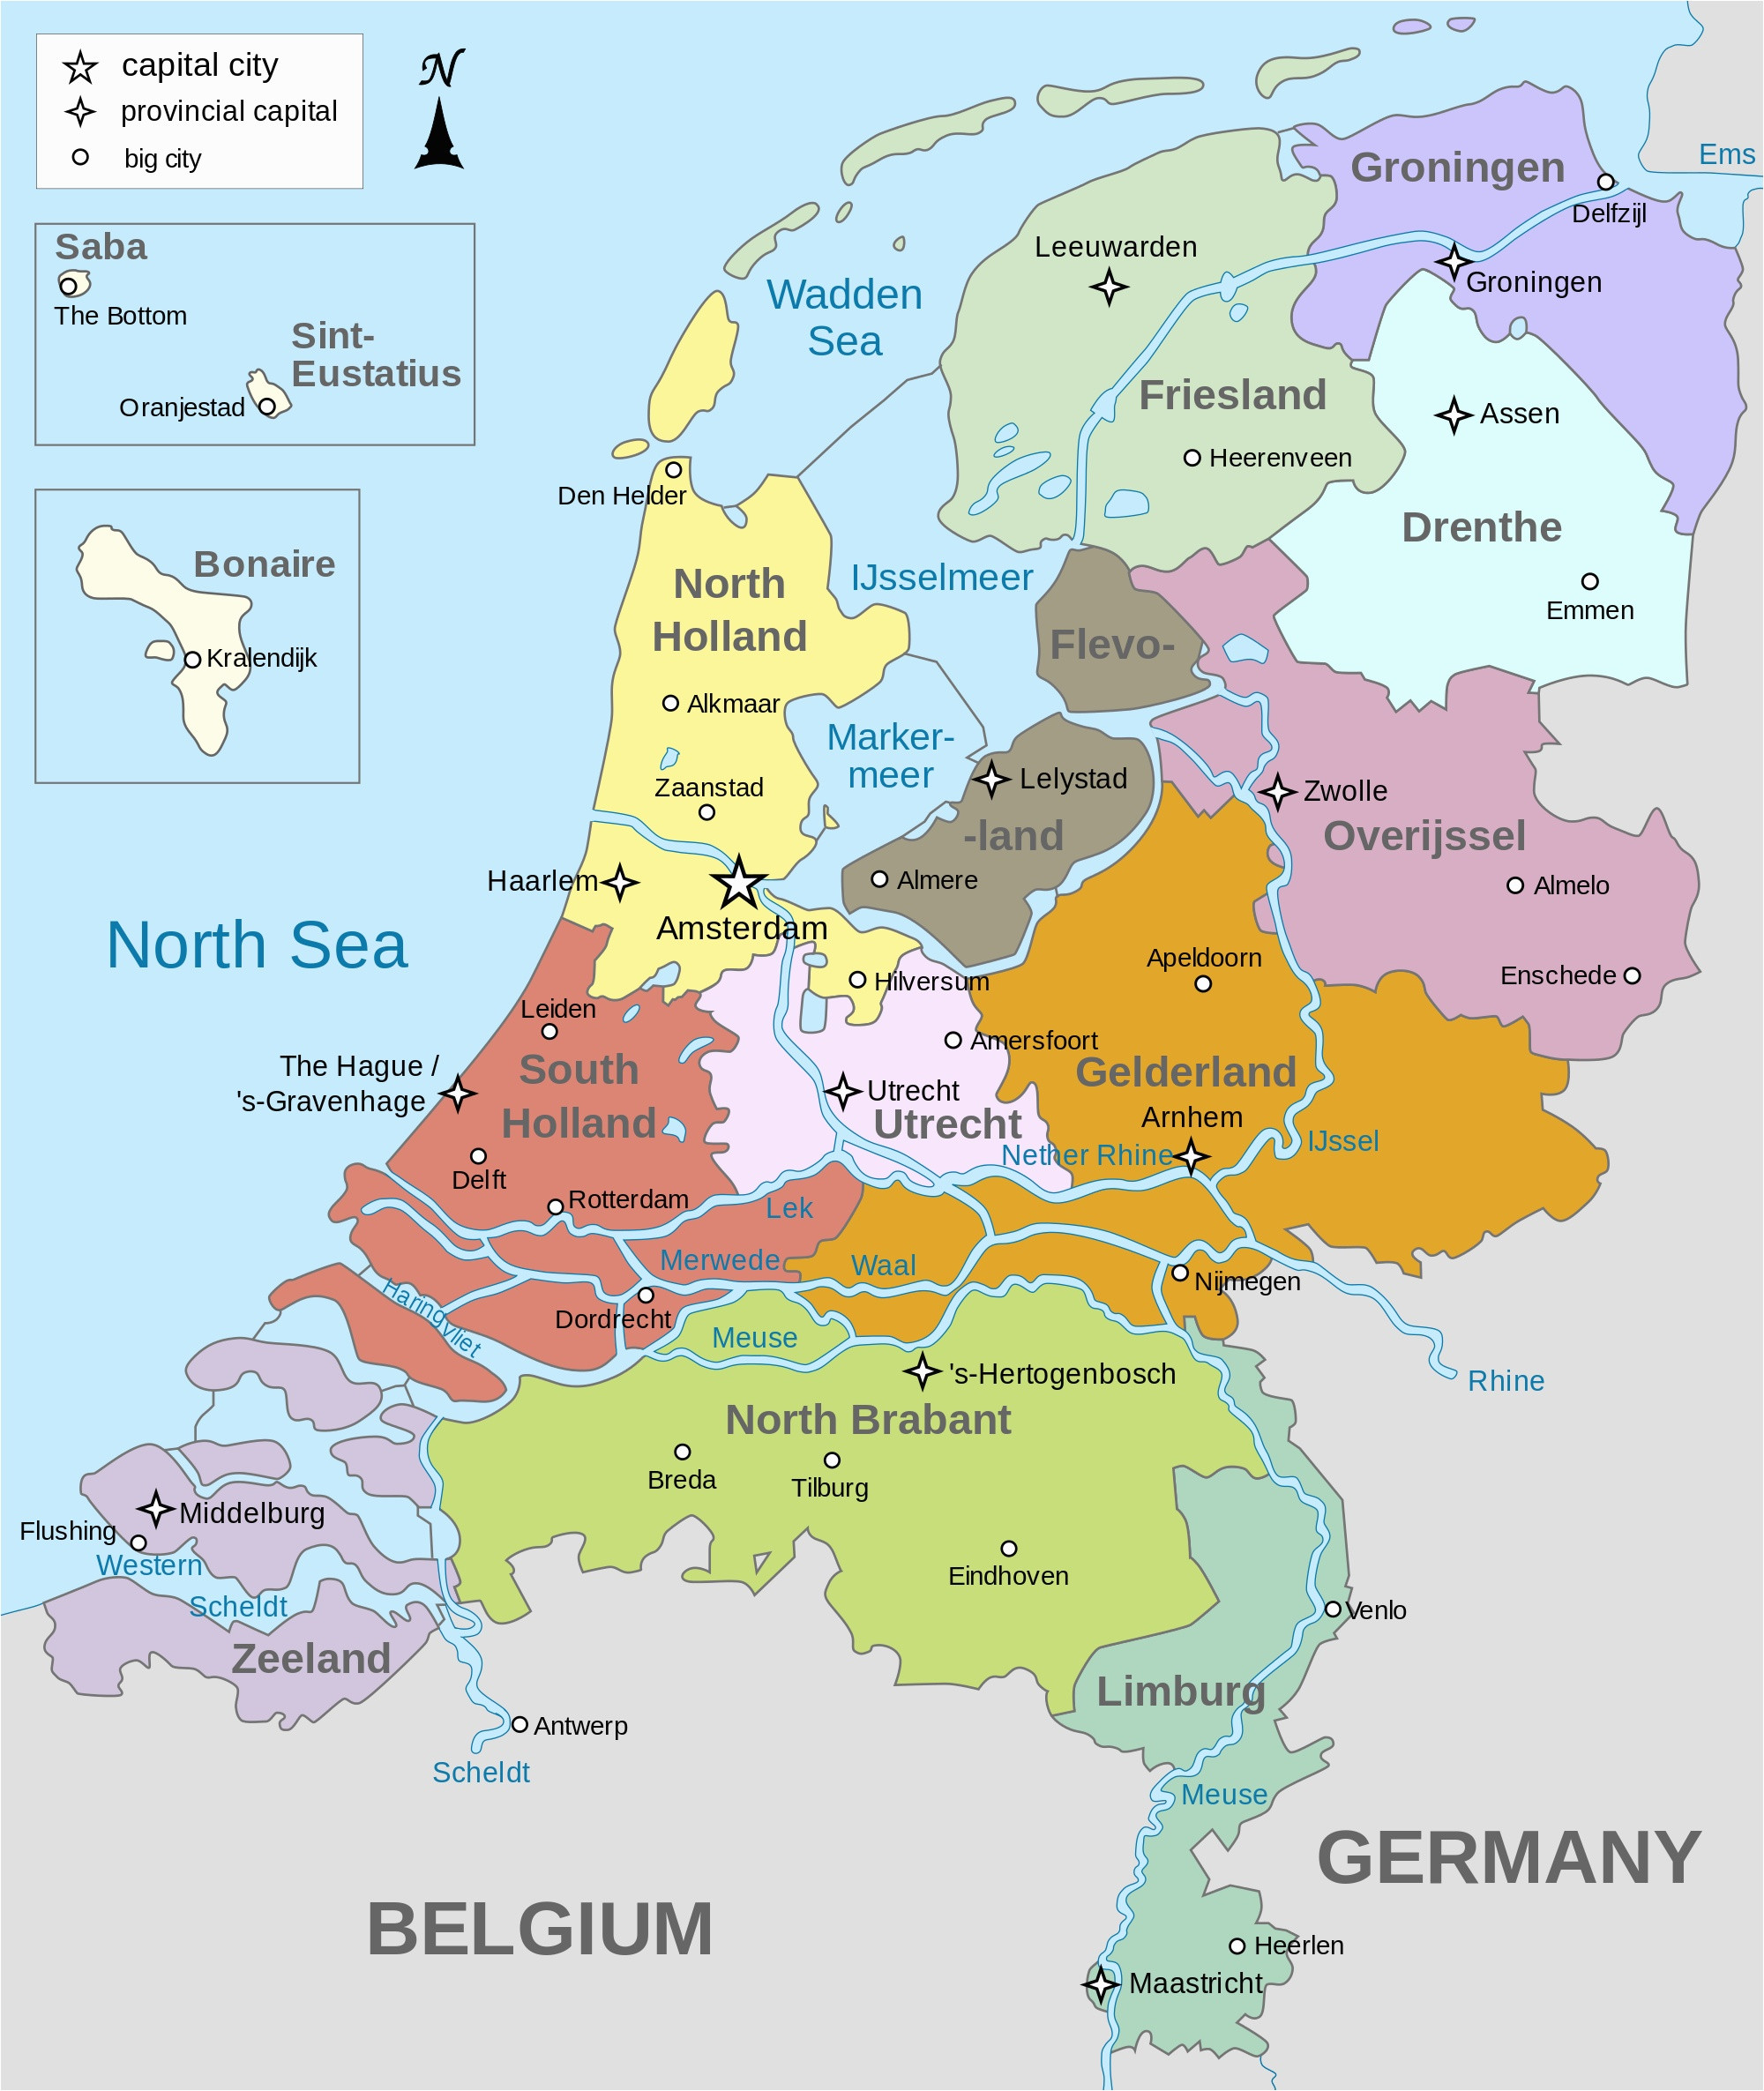 Gta V Printable Map Lovely Image Map Provinces Netherlands Eng Gta Wiki Map Capitals